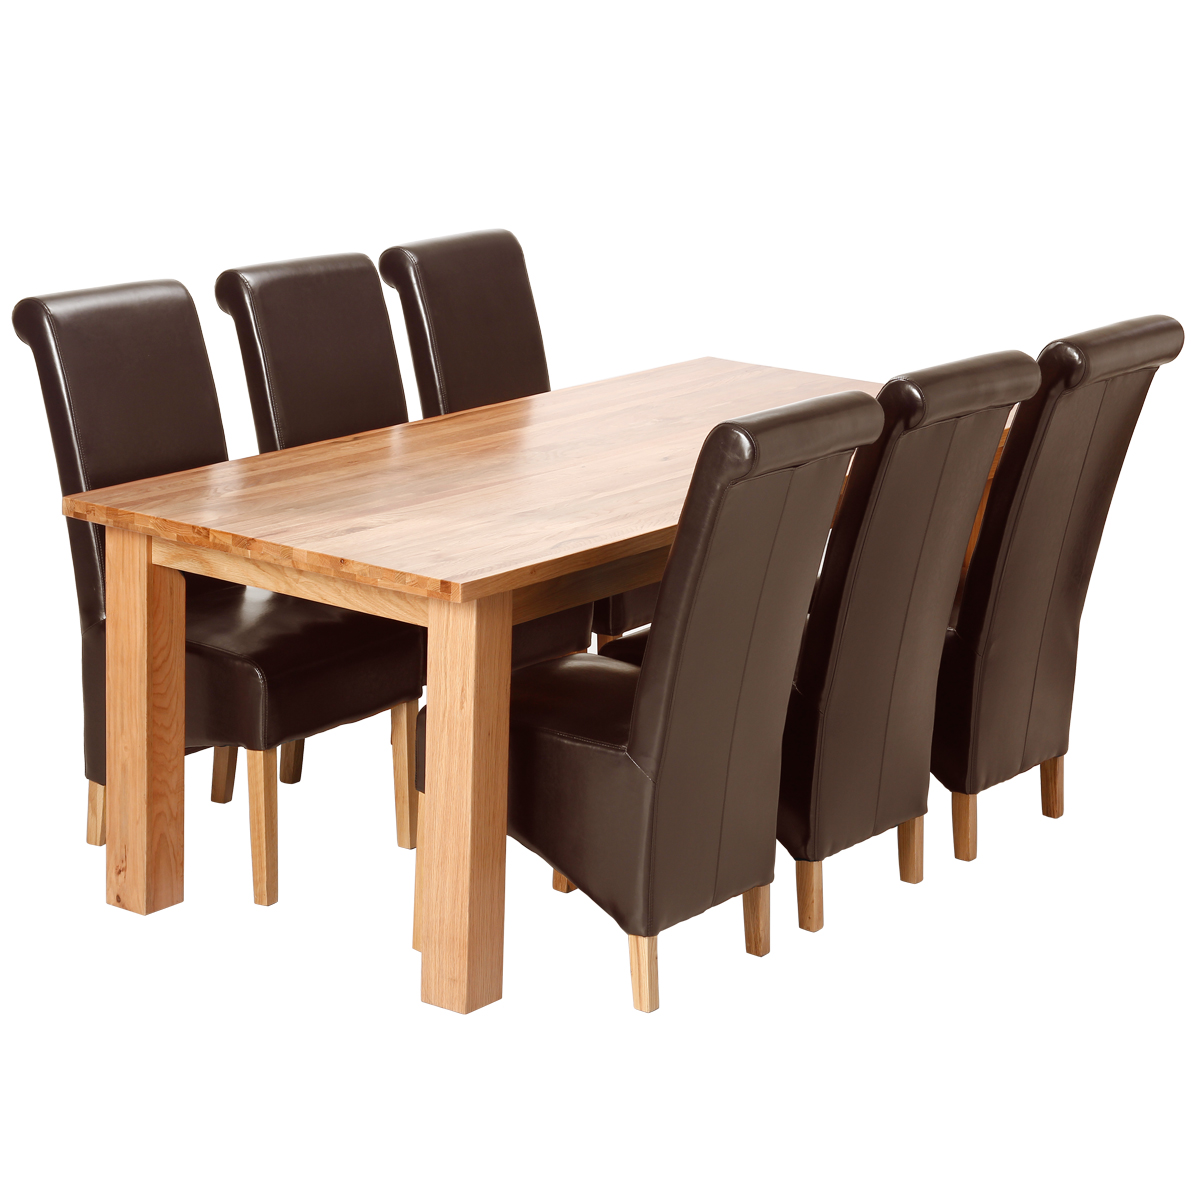 Magnificent Oak Dining Room Table and Chairs 1200 x 1200 · 383 kB · jpeg